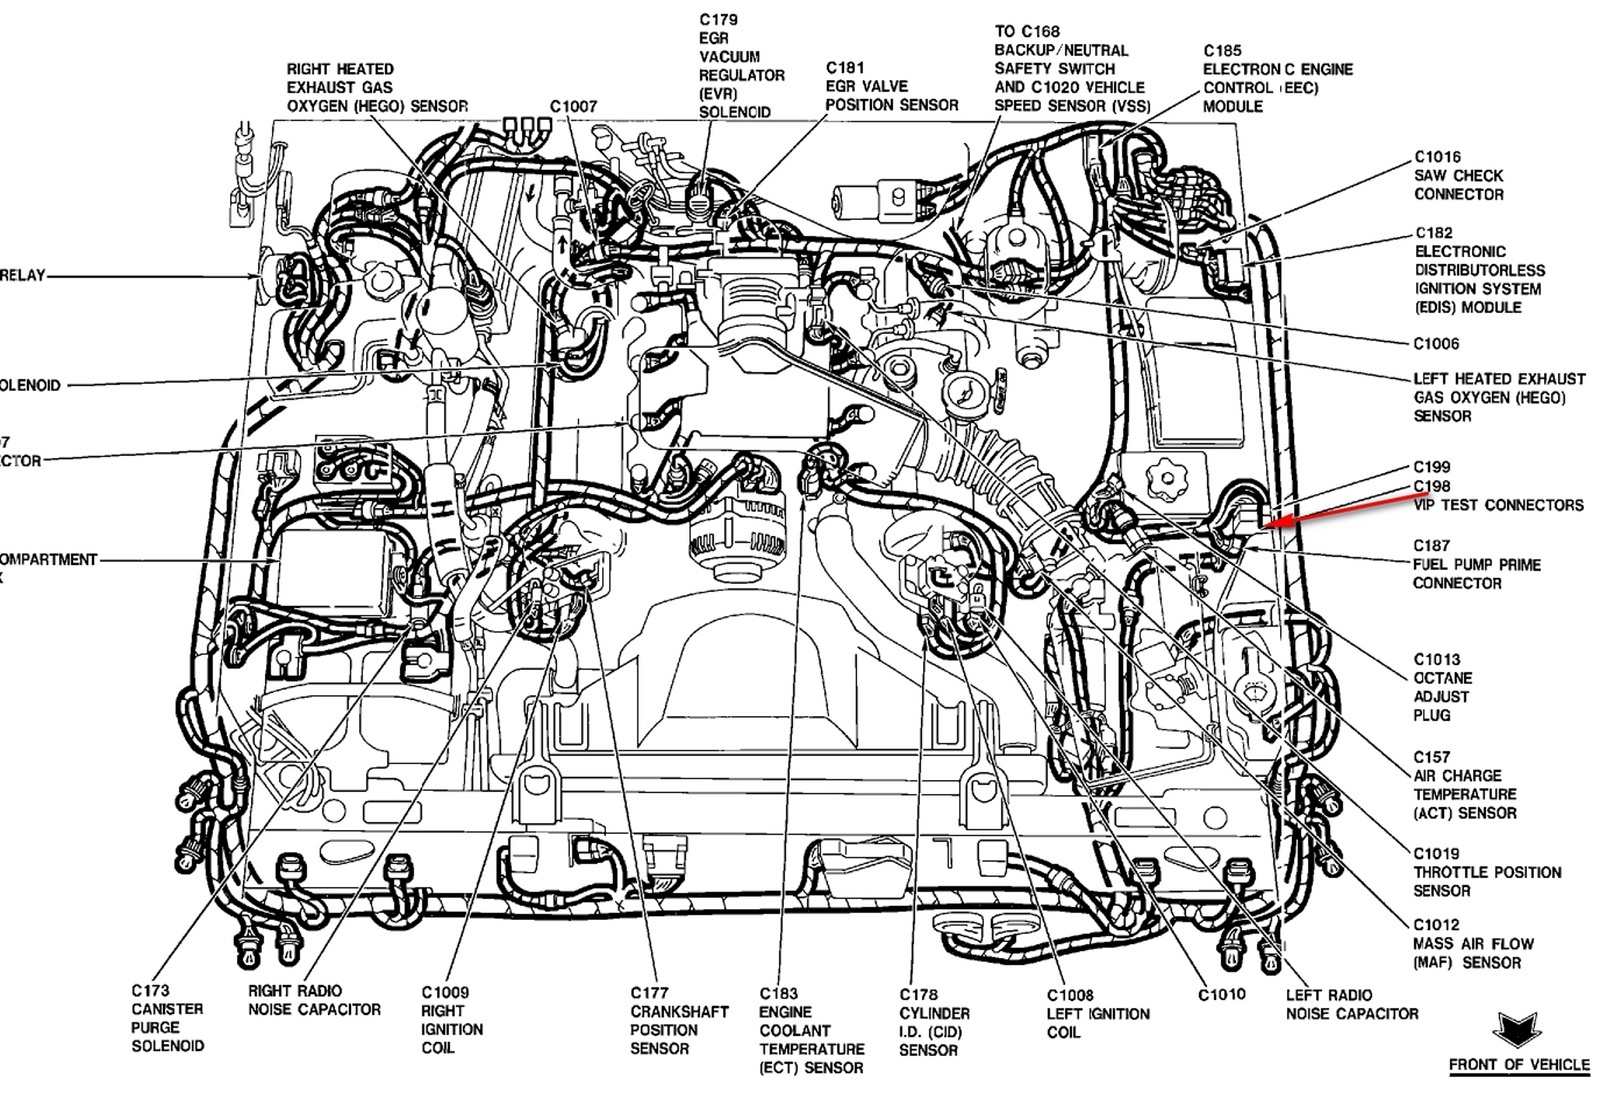 hight resolution of 99 buick century engine diagram wiring library rh 59 evitta de 1999 buick park avenue 3 8 belt diagram buick park avenue engine diagram head light diagram